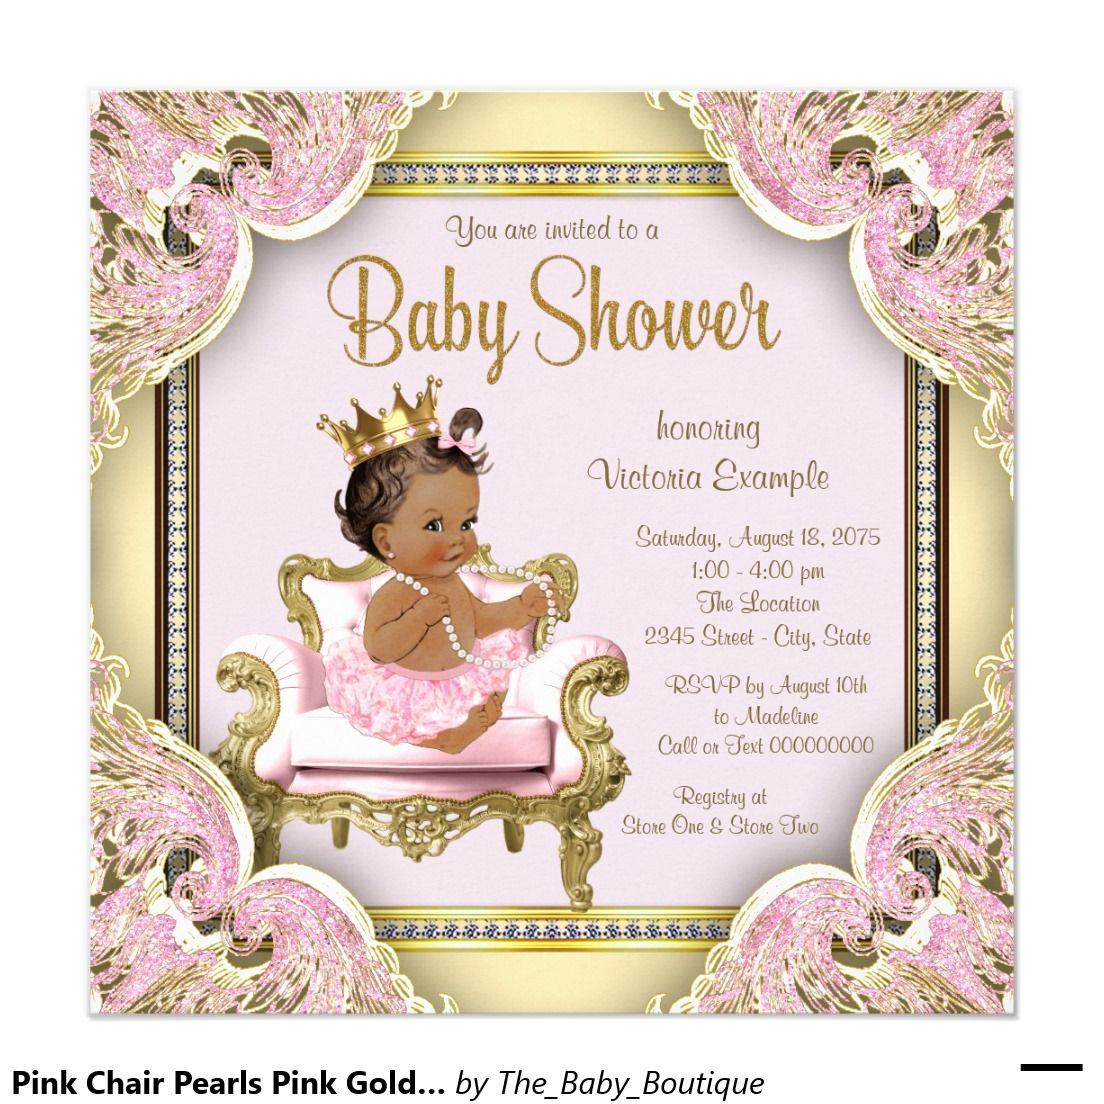 African Birthing Chair Resin Chaise Lounge With Slat Seat American Princess Baby Shower Invitation